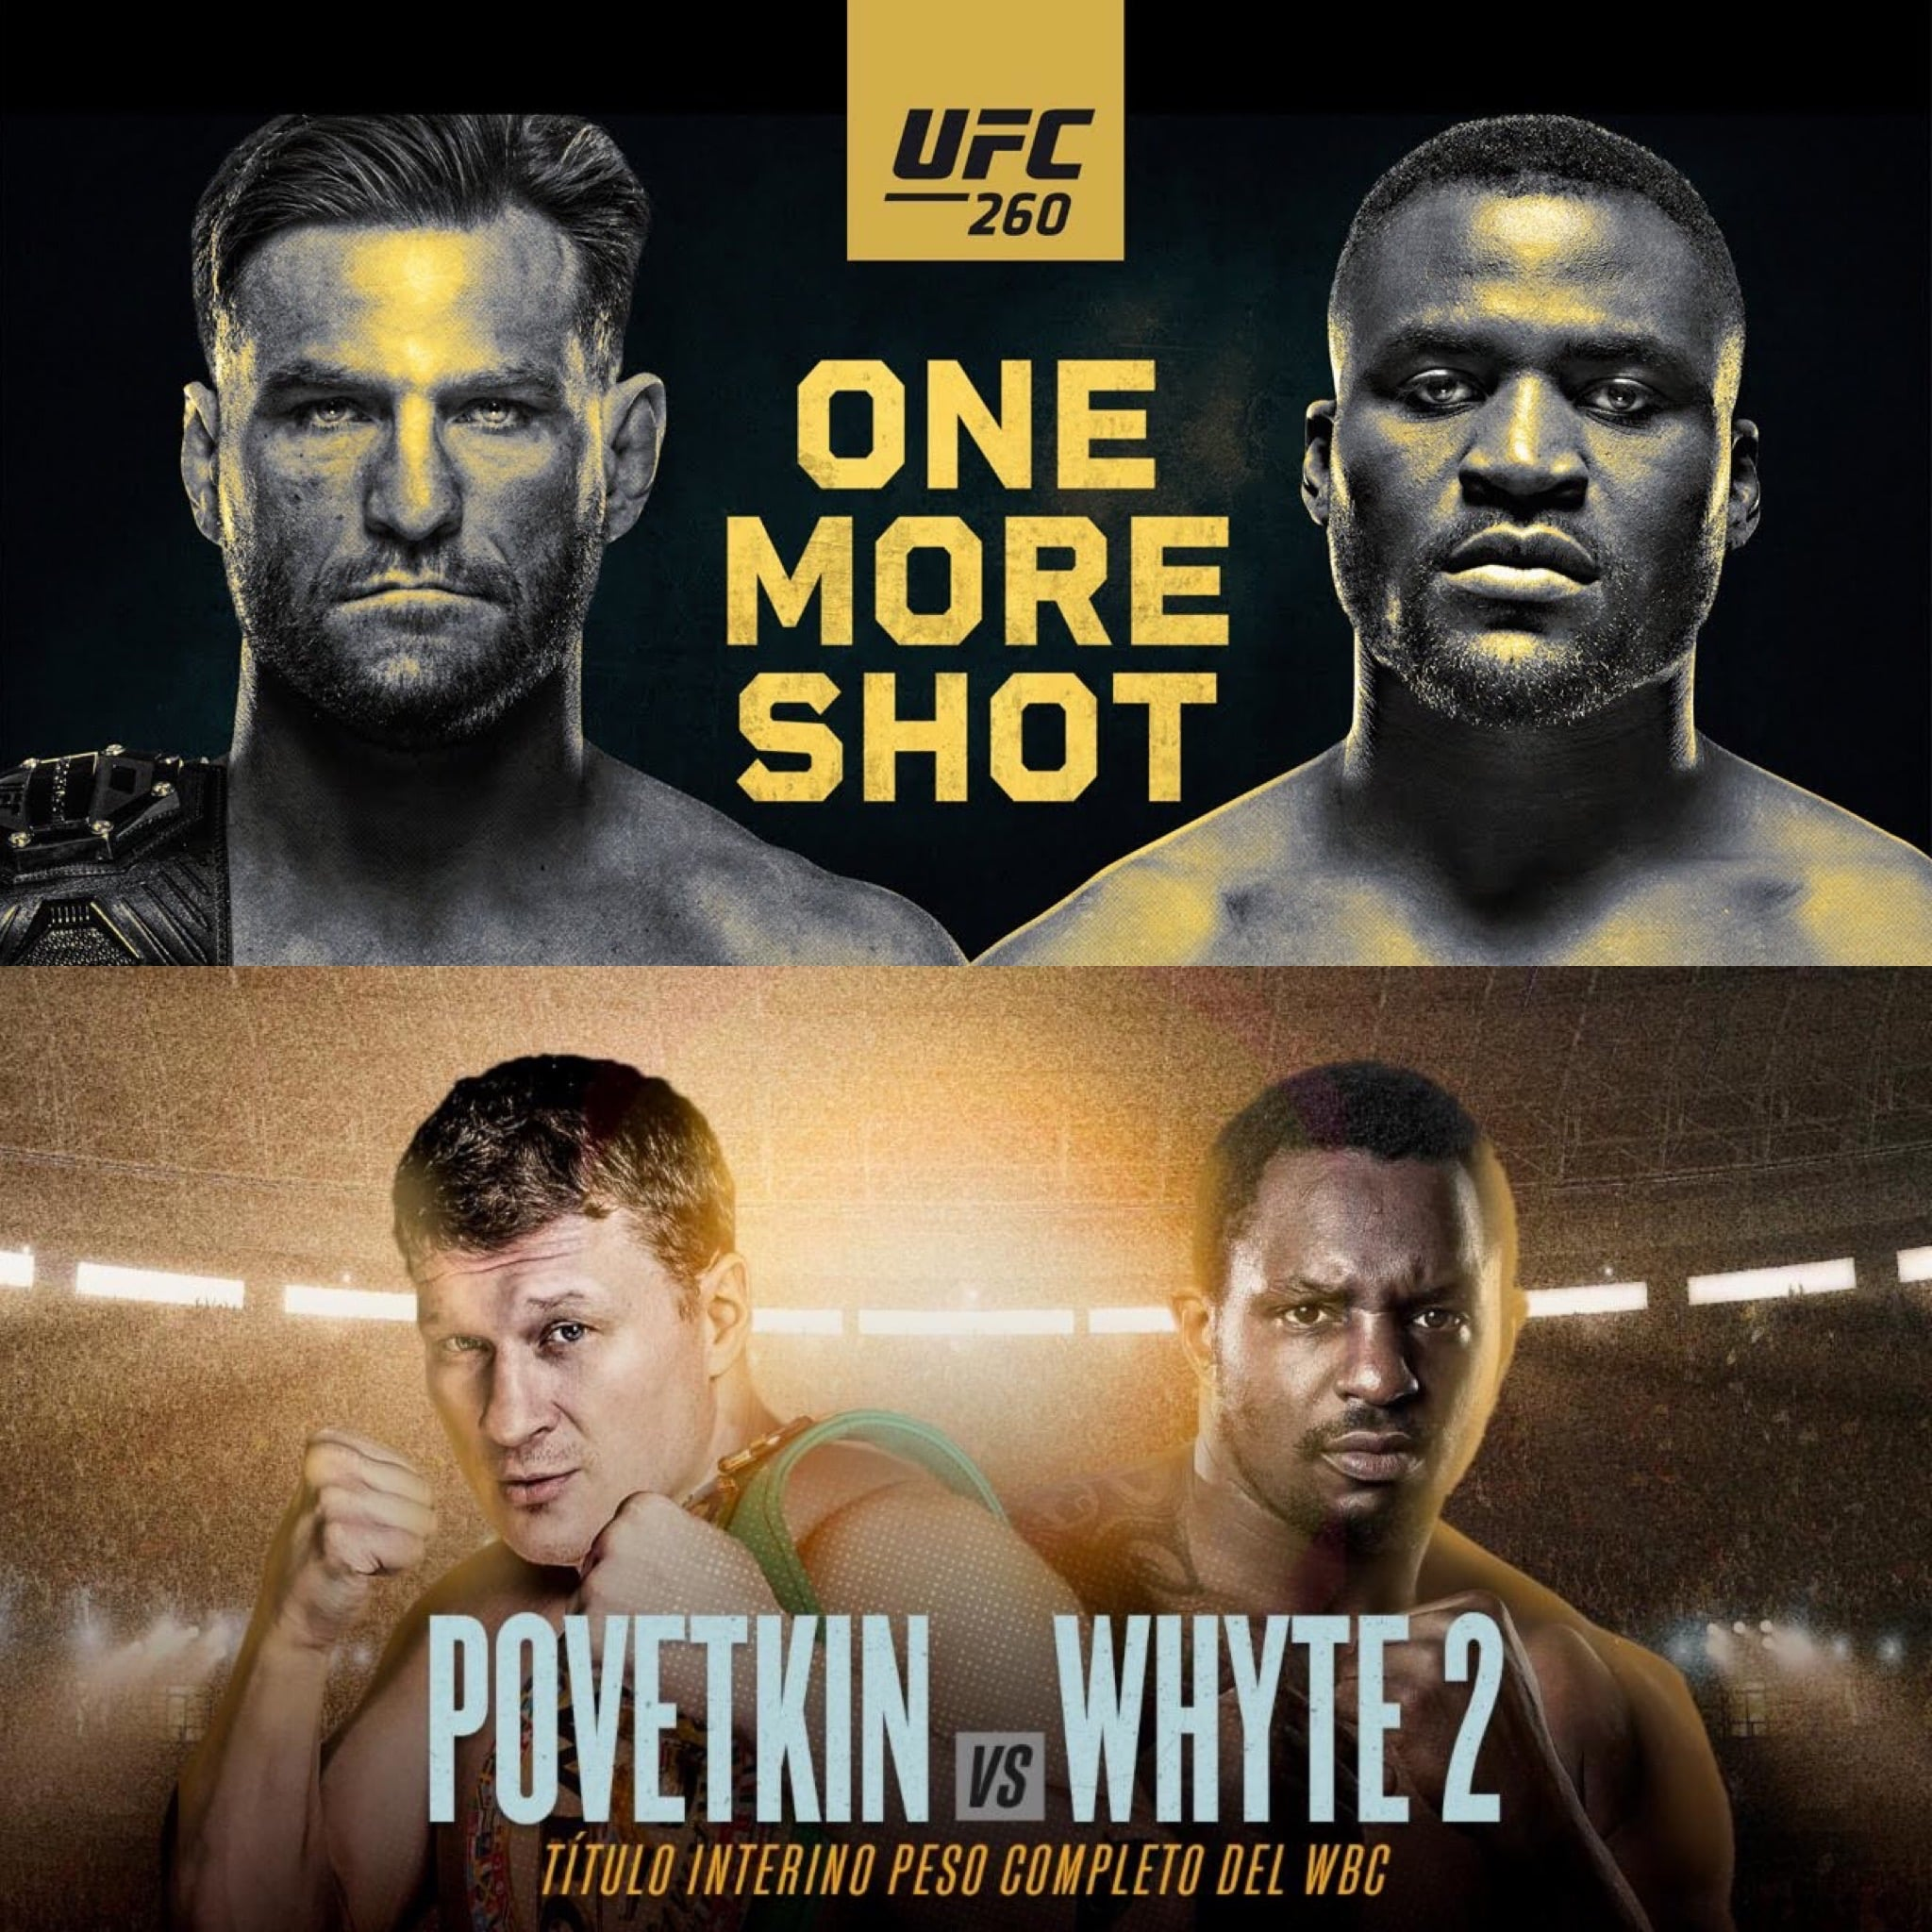 UFC 260 + Whyte vs Povetkin Picks | The Fight Show (Ep. 36)